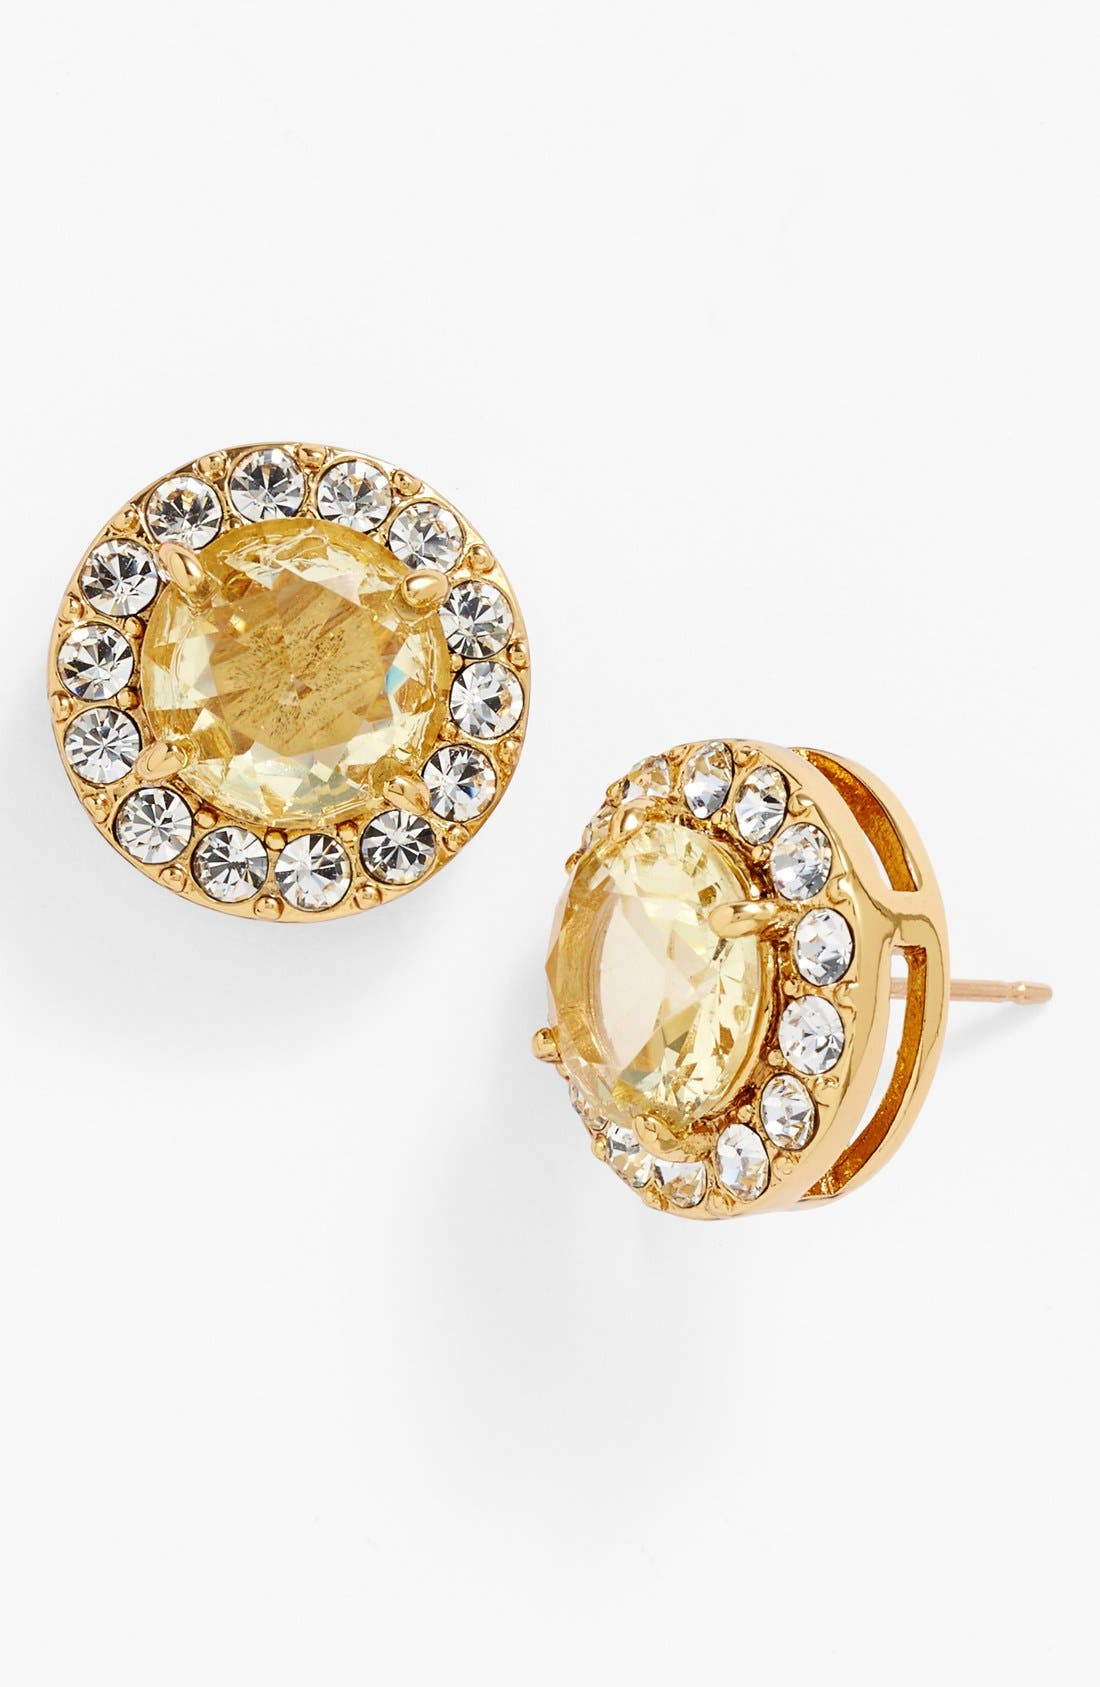 Main Image - kate spade new york 'basket pavé' stud earrings